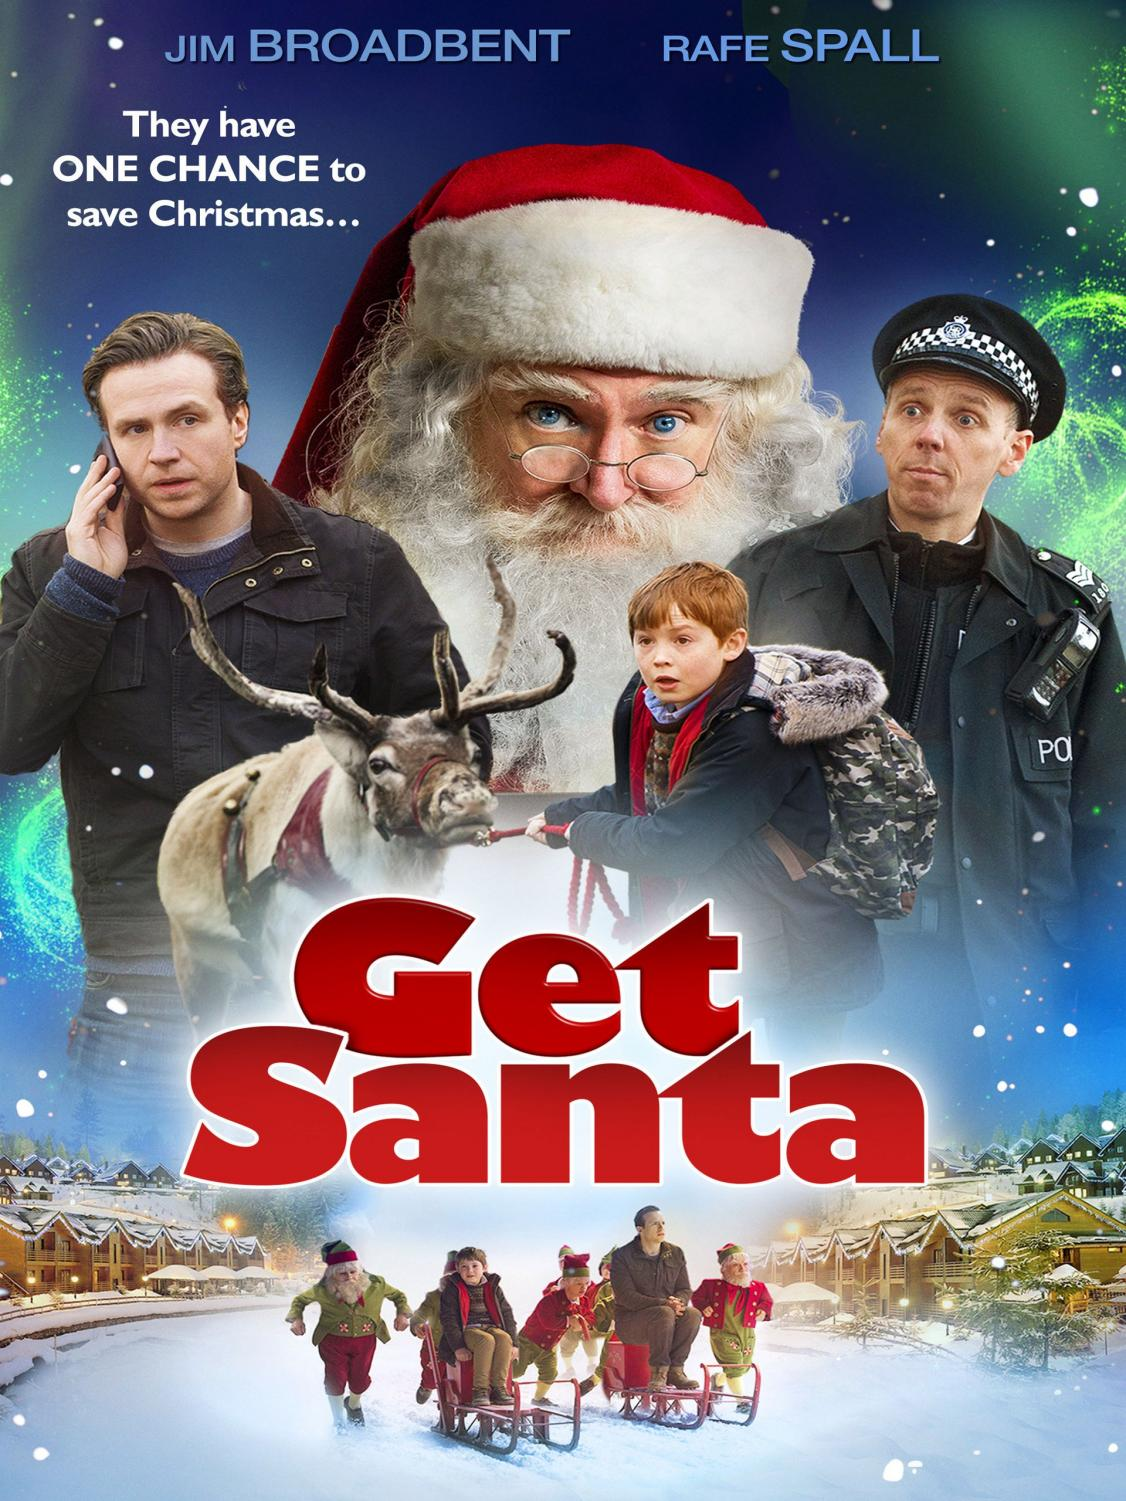 Seen here is the poster for the British Christmas film Get Santa.